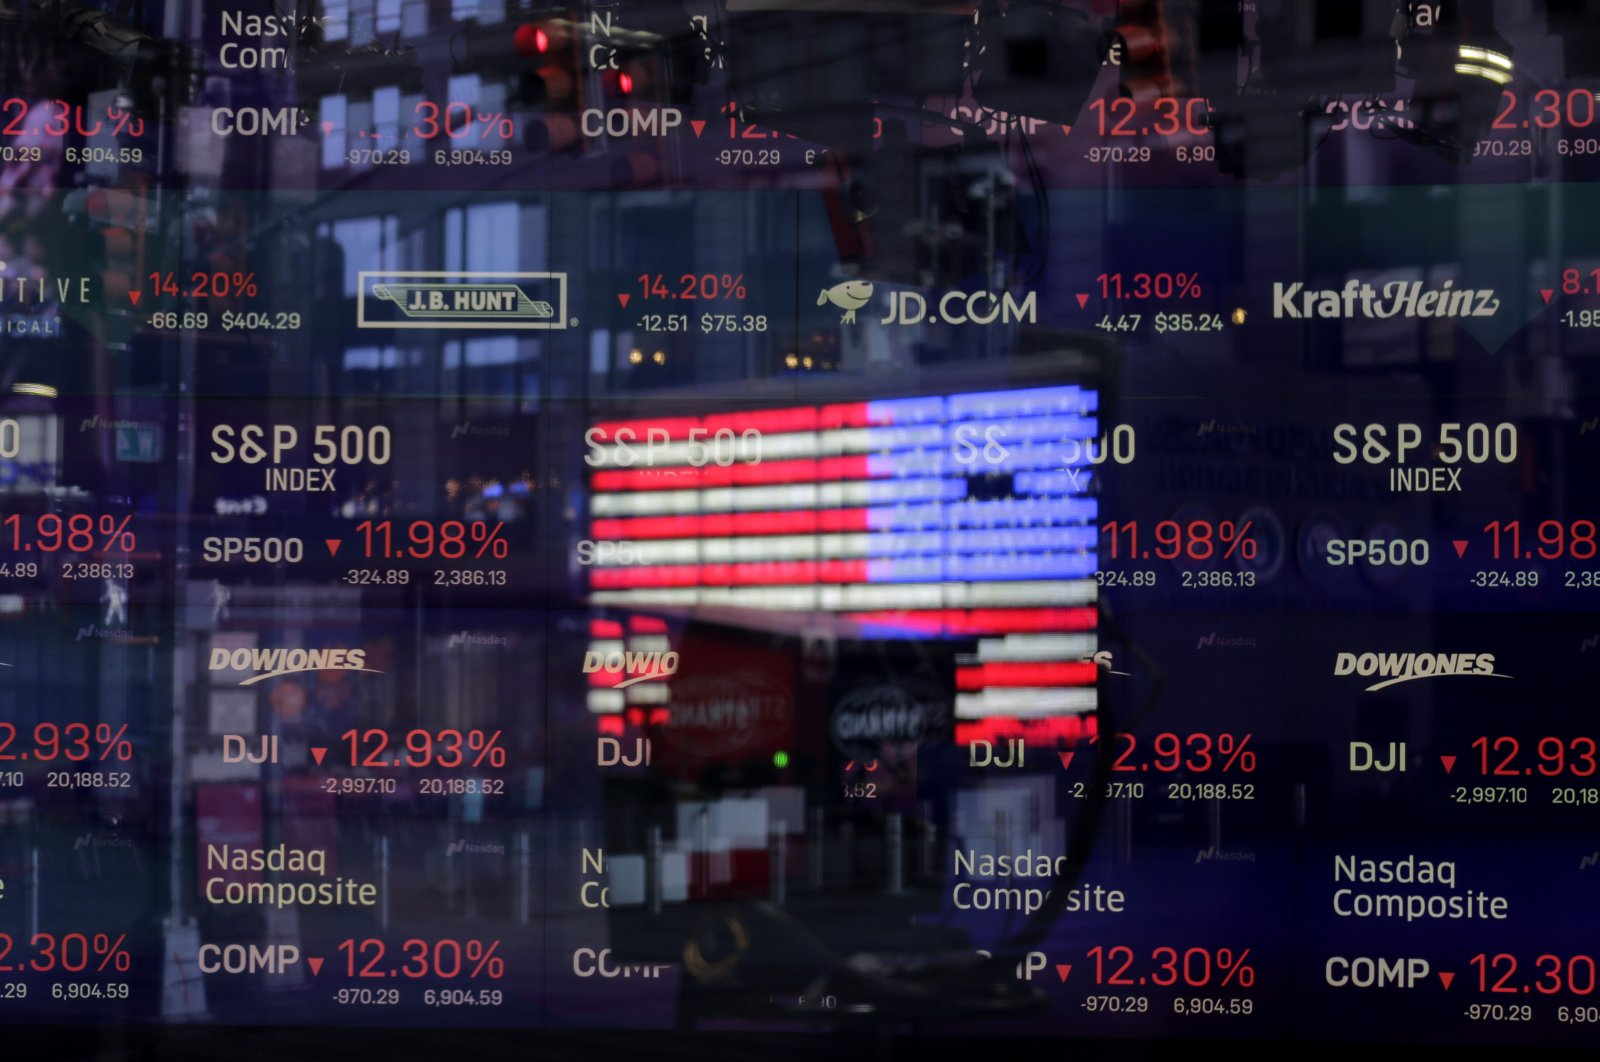 A United States flag is reflected in the window of the Nasdaq studio, which displays indices and stocks down, in Times Square, New York, Monday, March 16, 2020. (AP Photo)